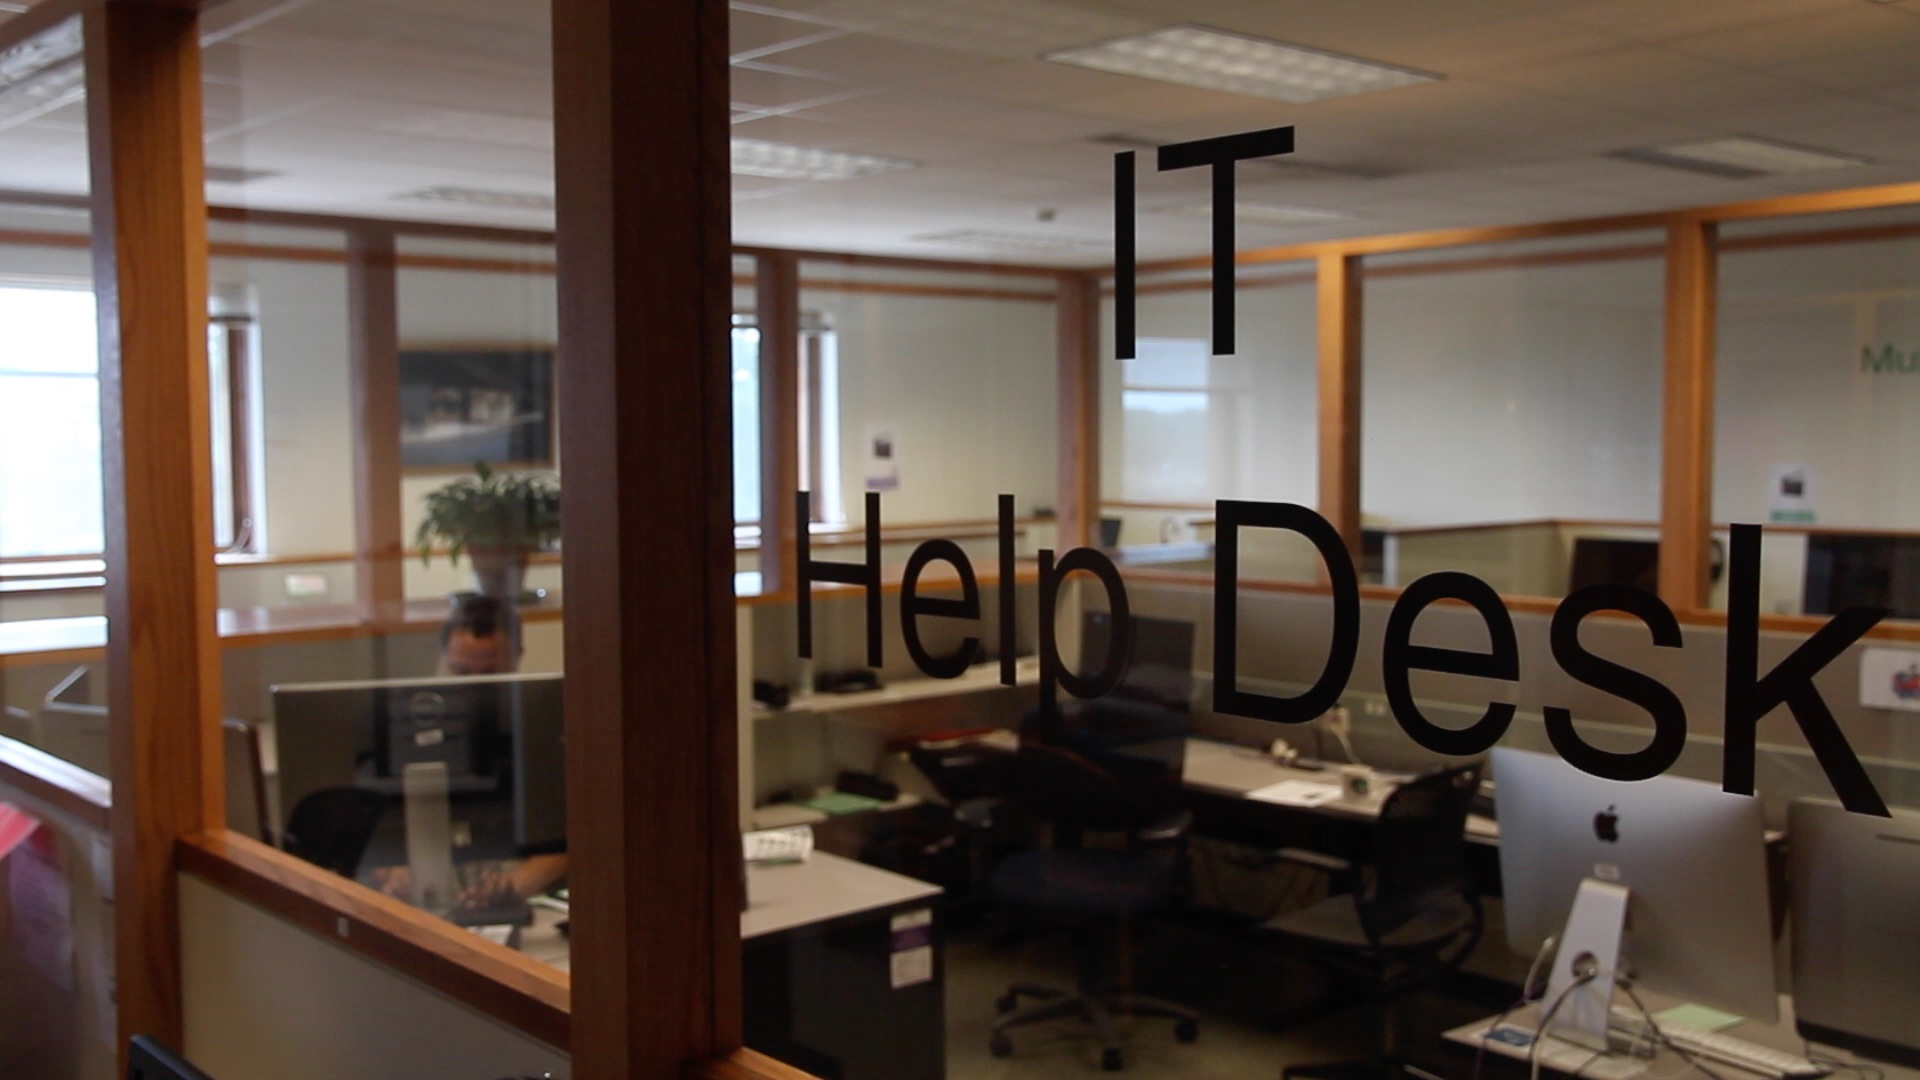 The IT Help Desk